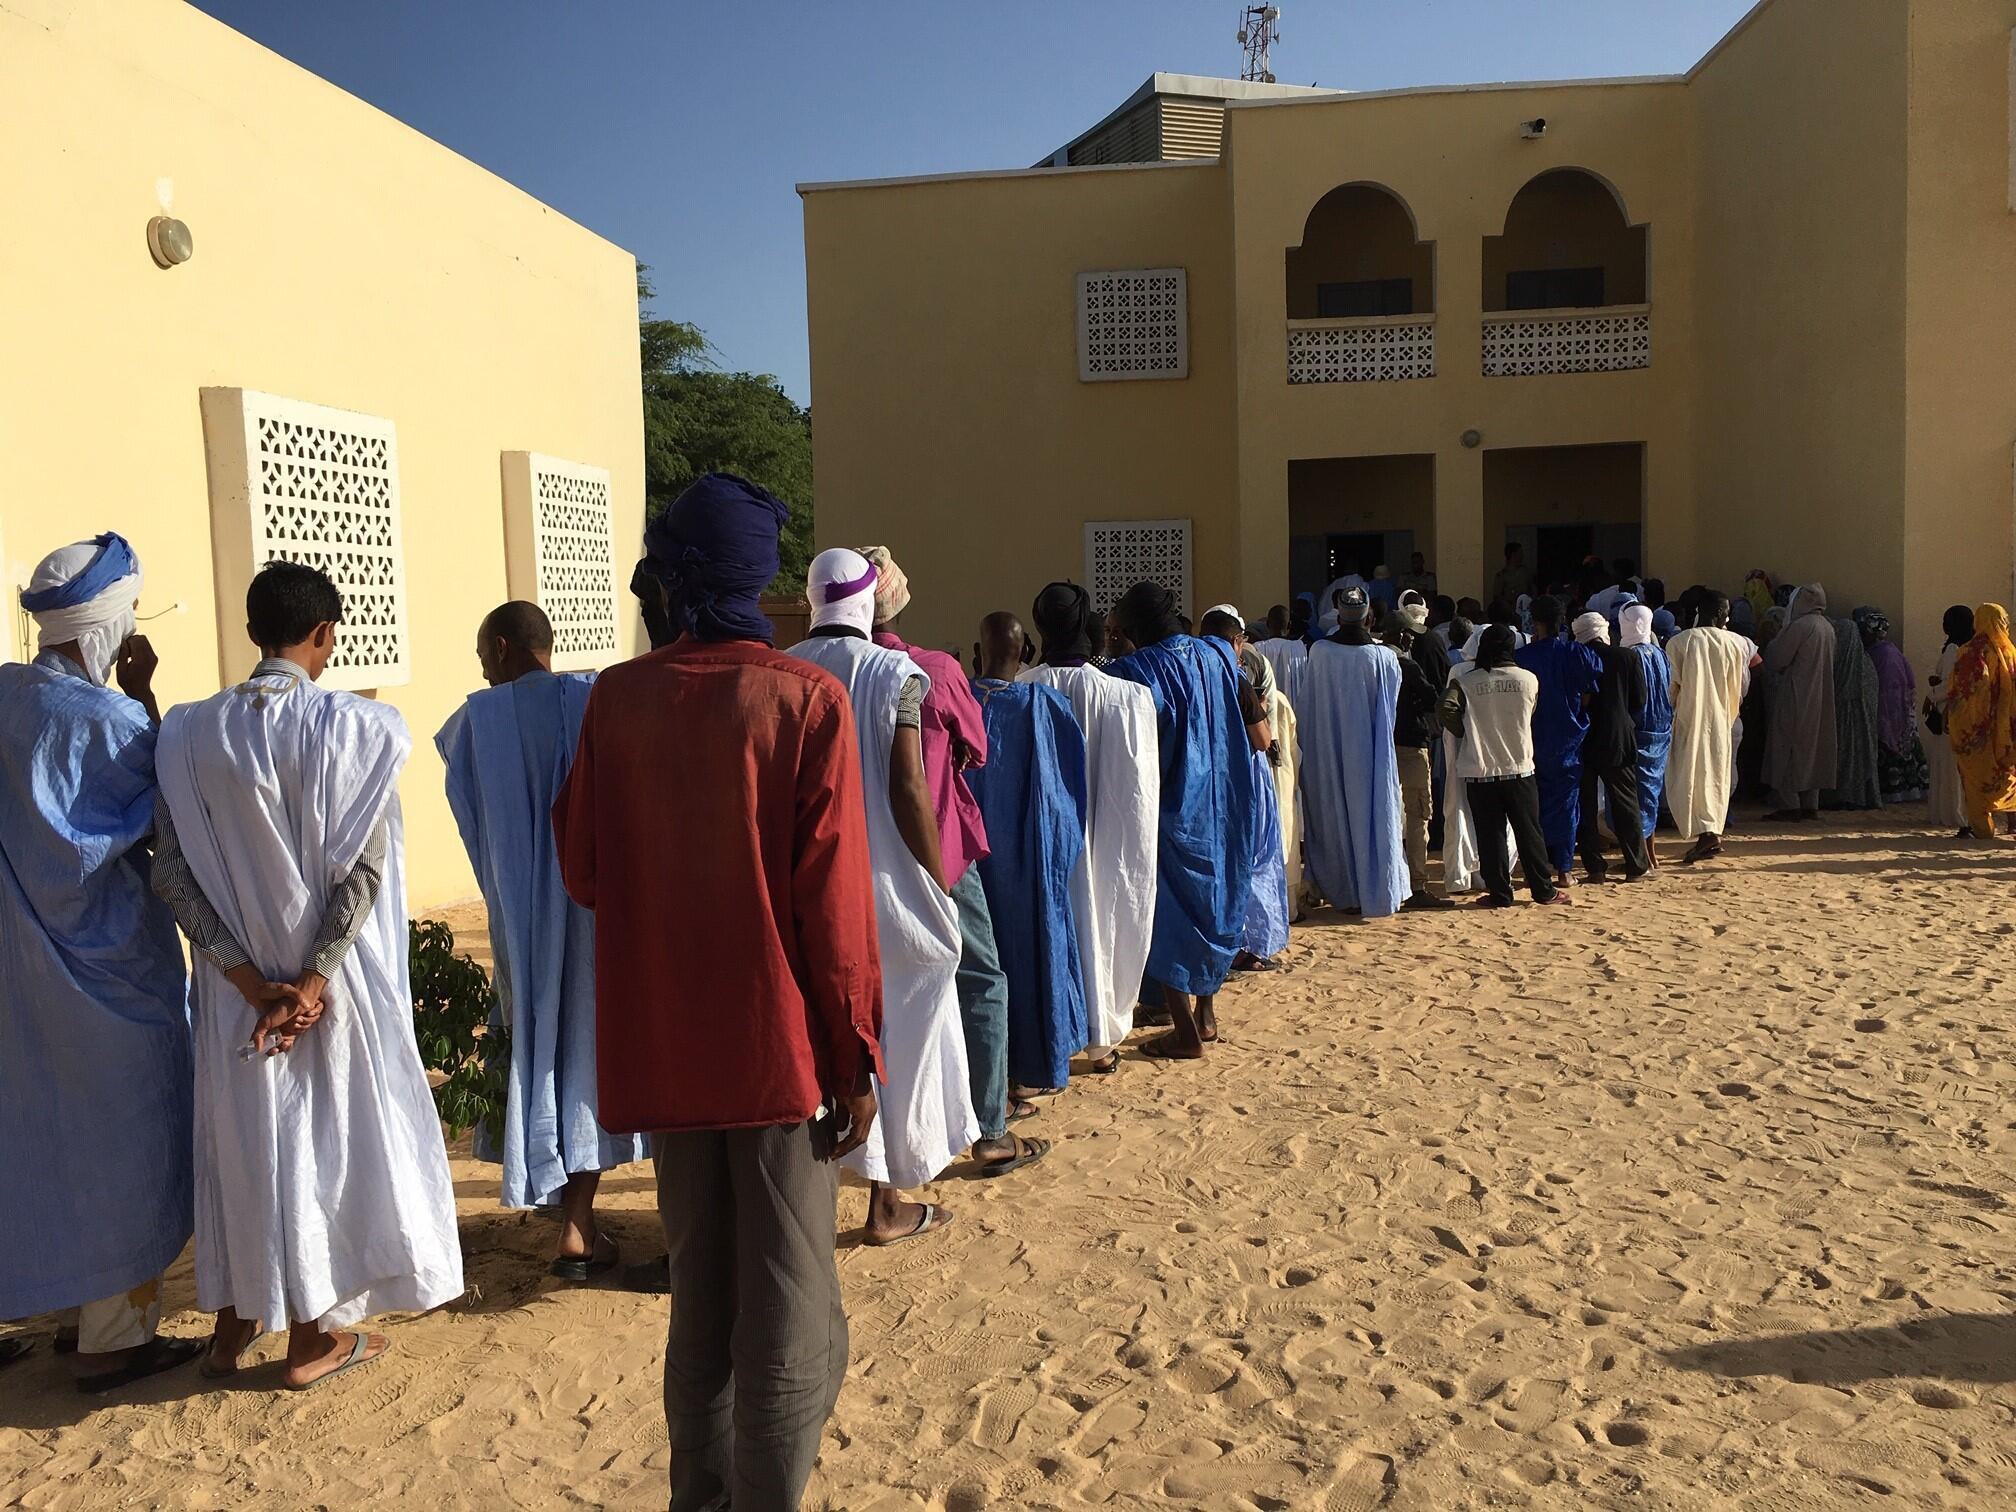 Voters queue at the voting station in Mauritania's presidential elections on Saturday June 22